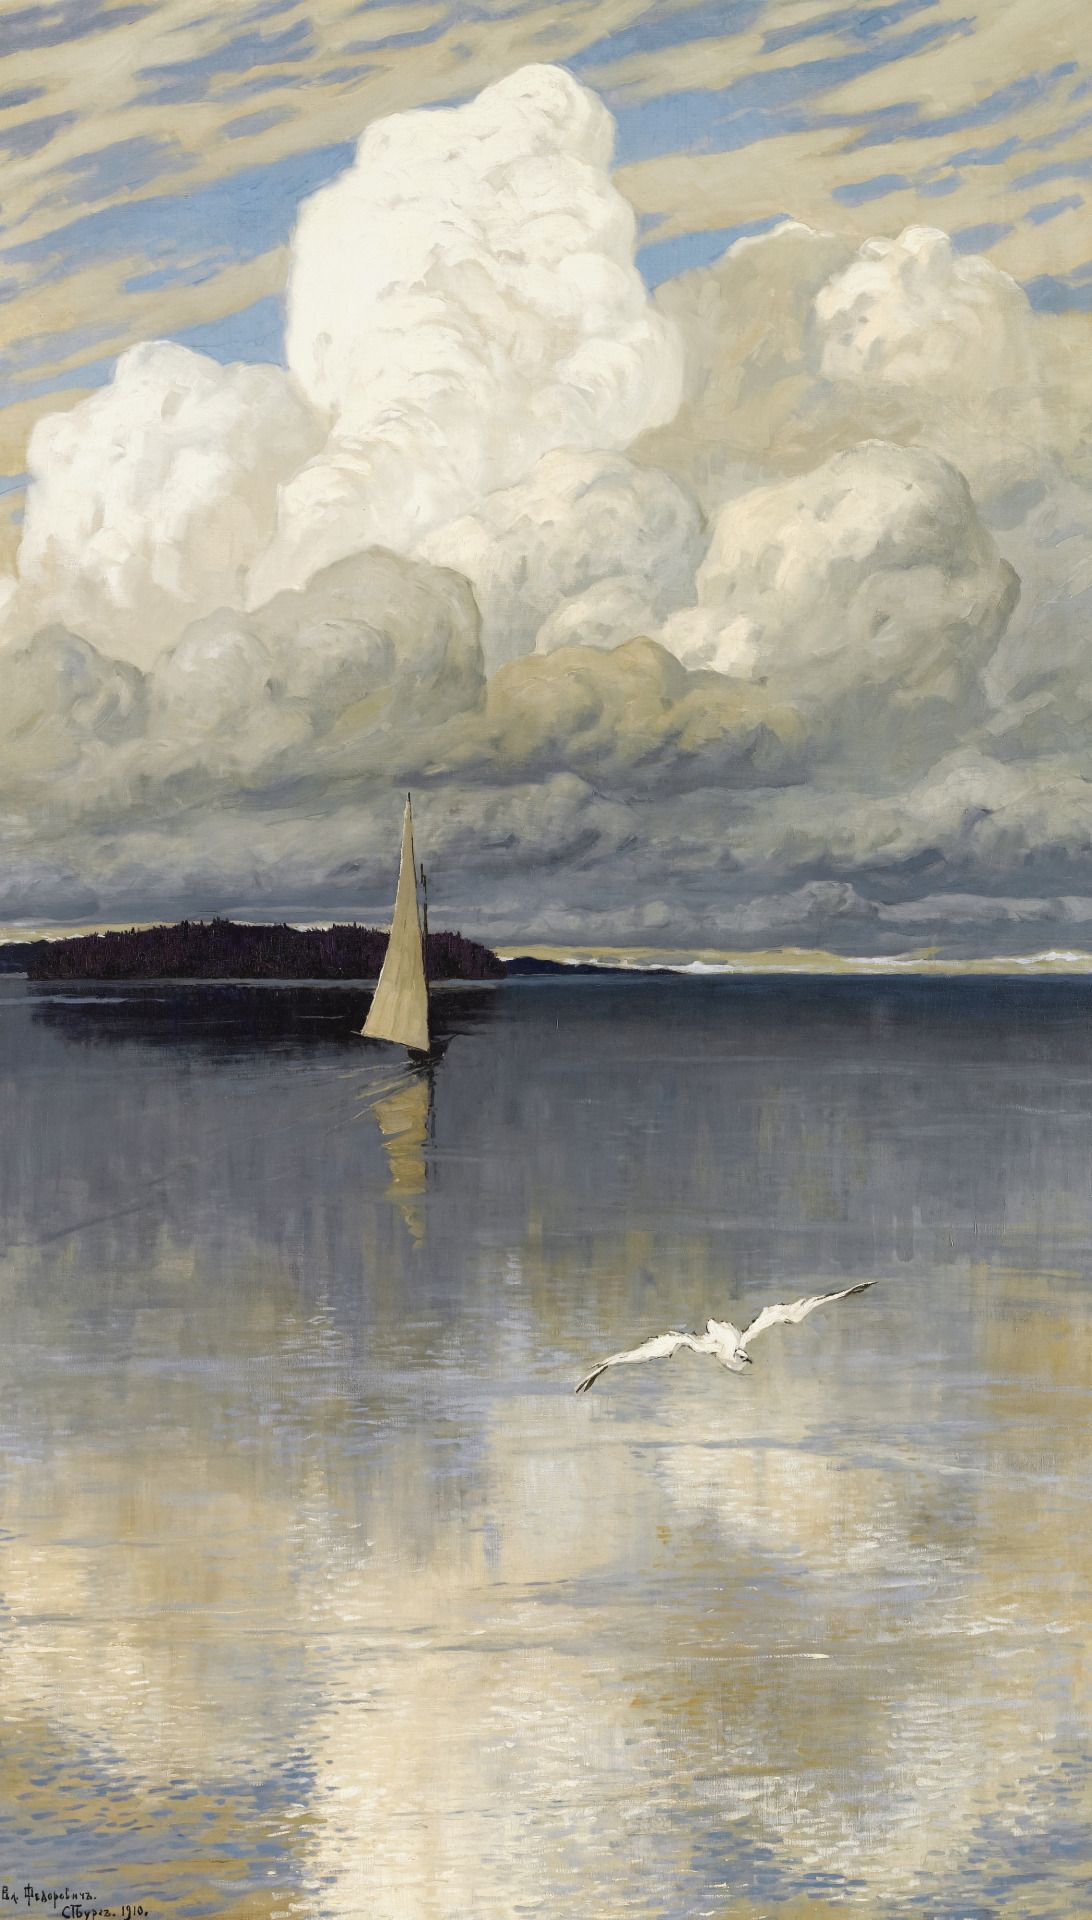 Calm Waters, by Vladimir Nikolaevich Fedorovich, 1910. Oil on canvas